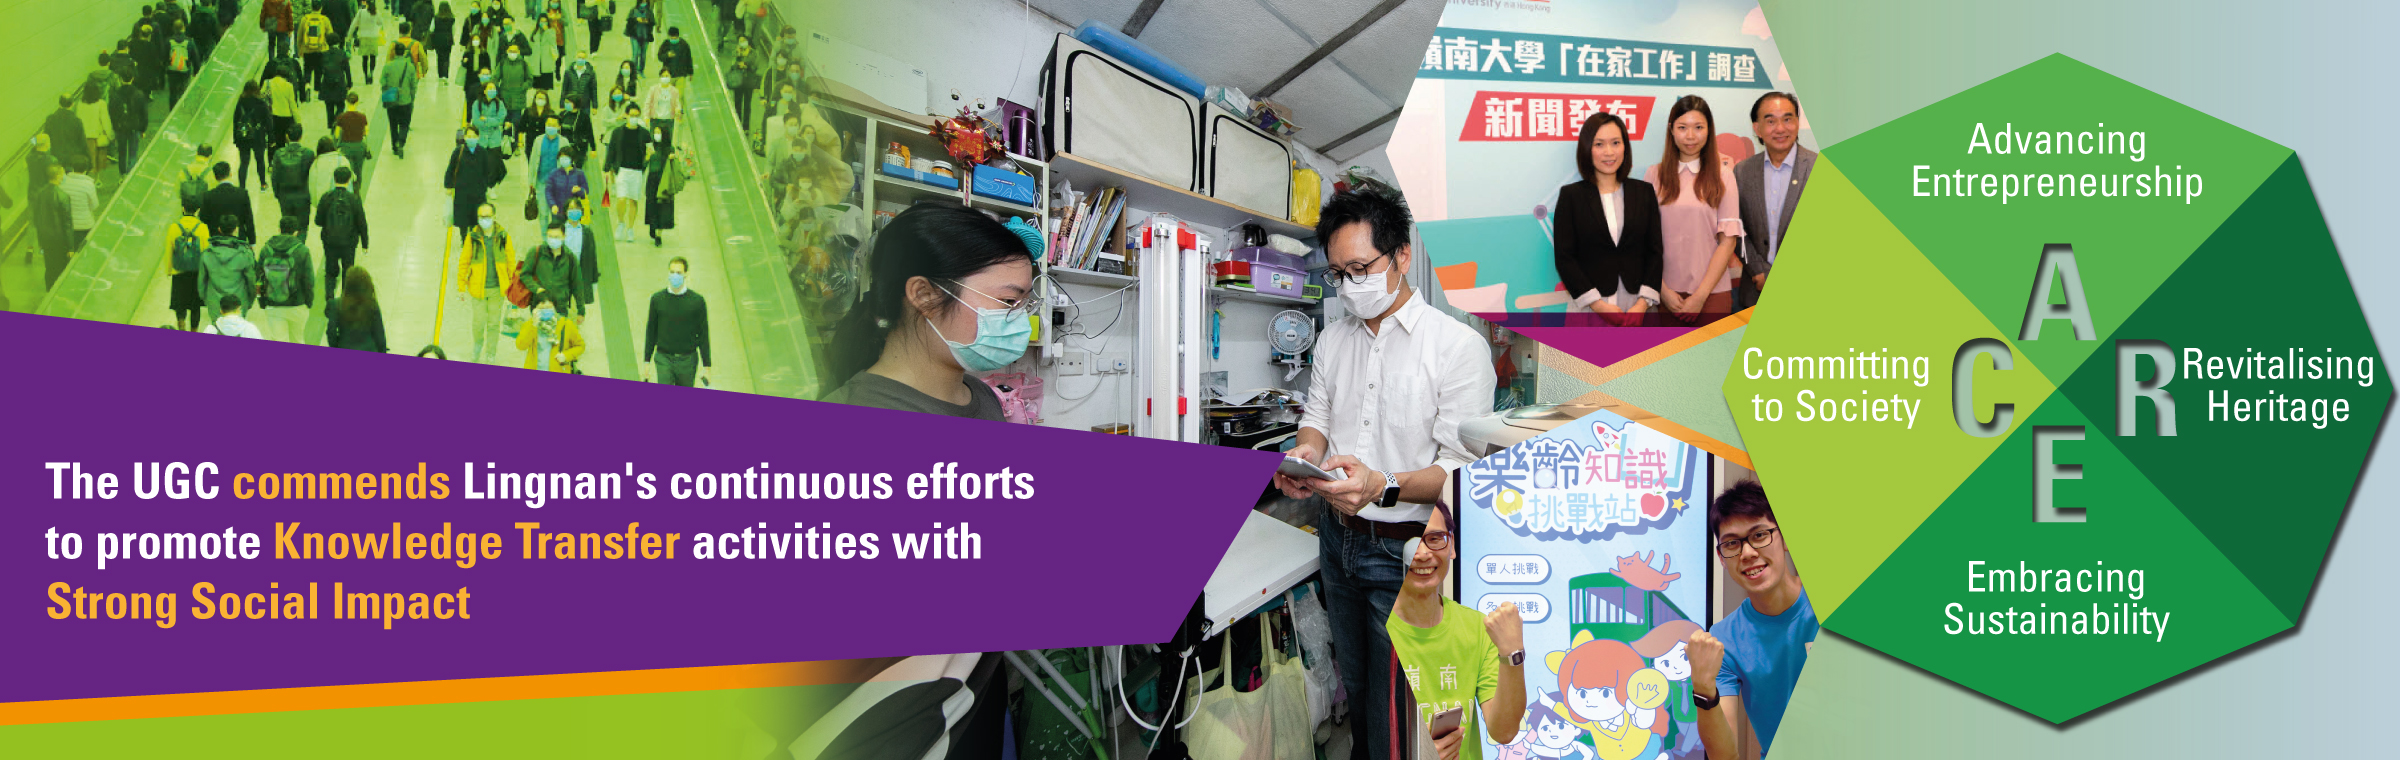 The UGC commends Lingnan's continuous efforts to promote Knowledge Transfer activities with Strong Social Impact